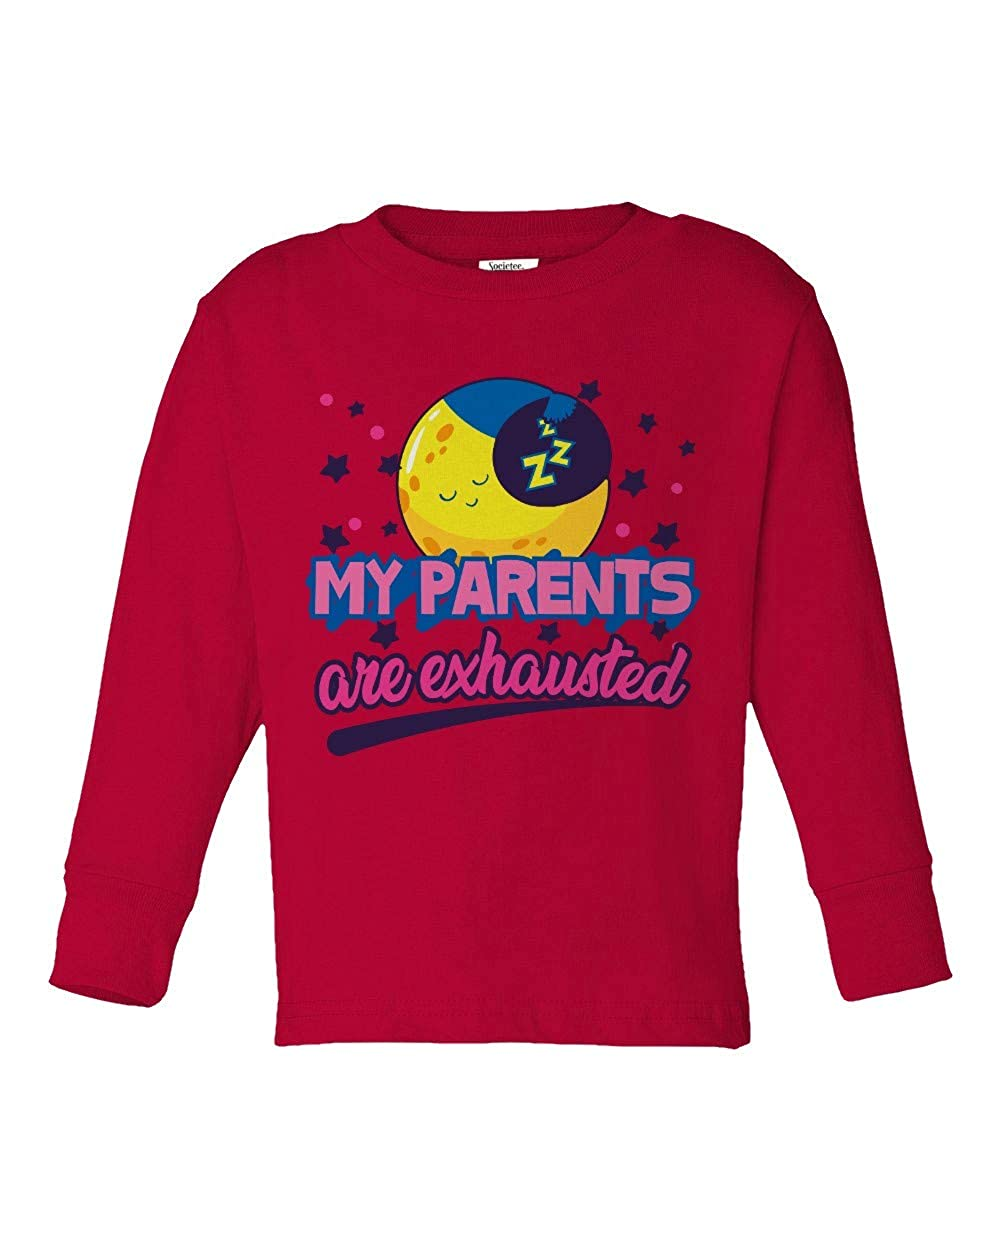 Societee My Parents are Exhausted Funny Cute Girls Boys Toddler Long Sleeve T-Shirt